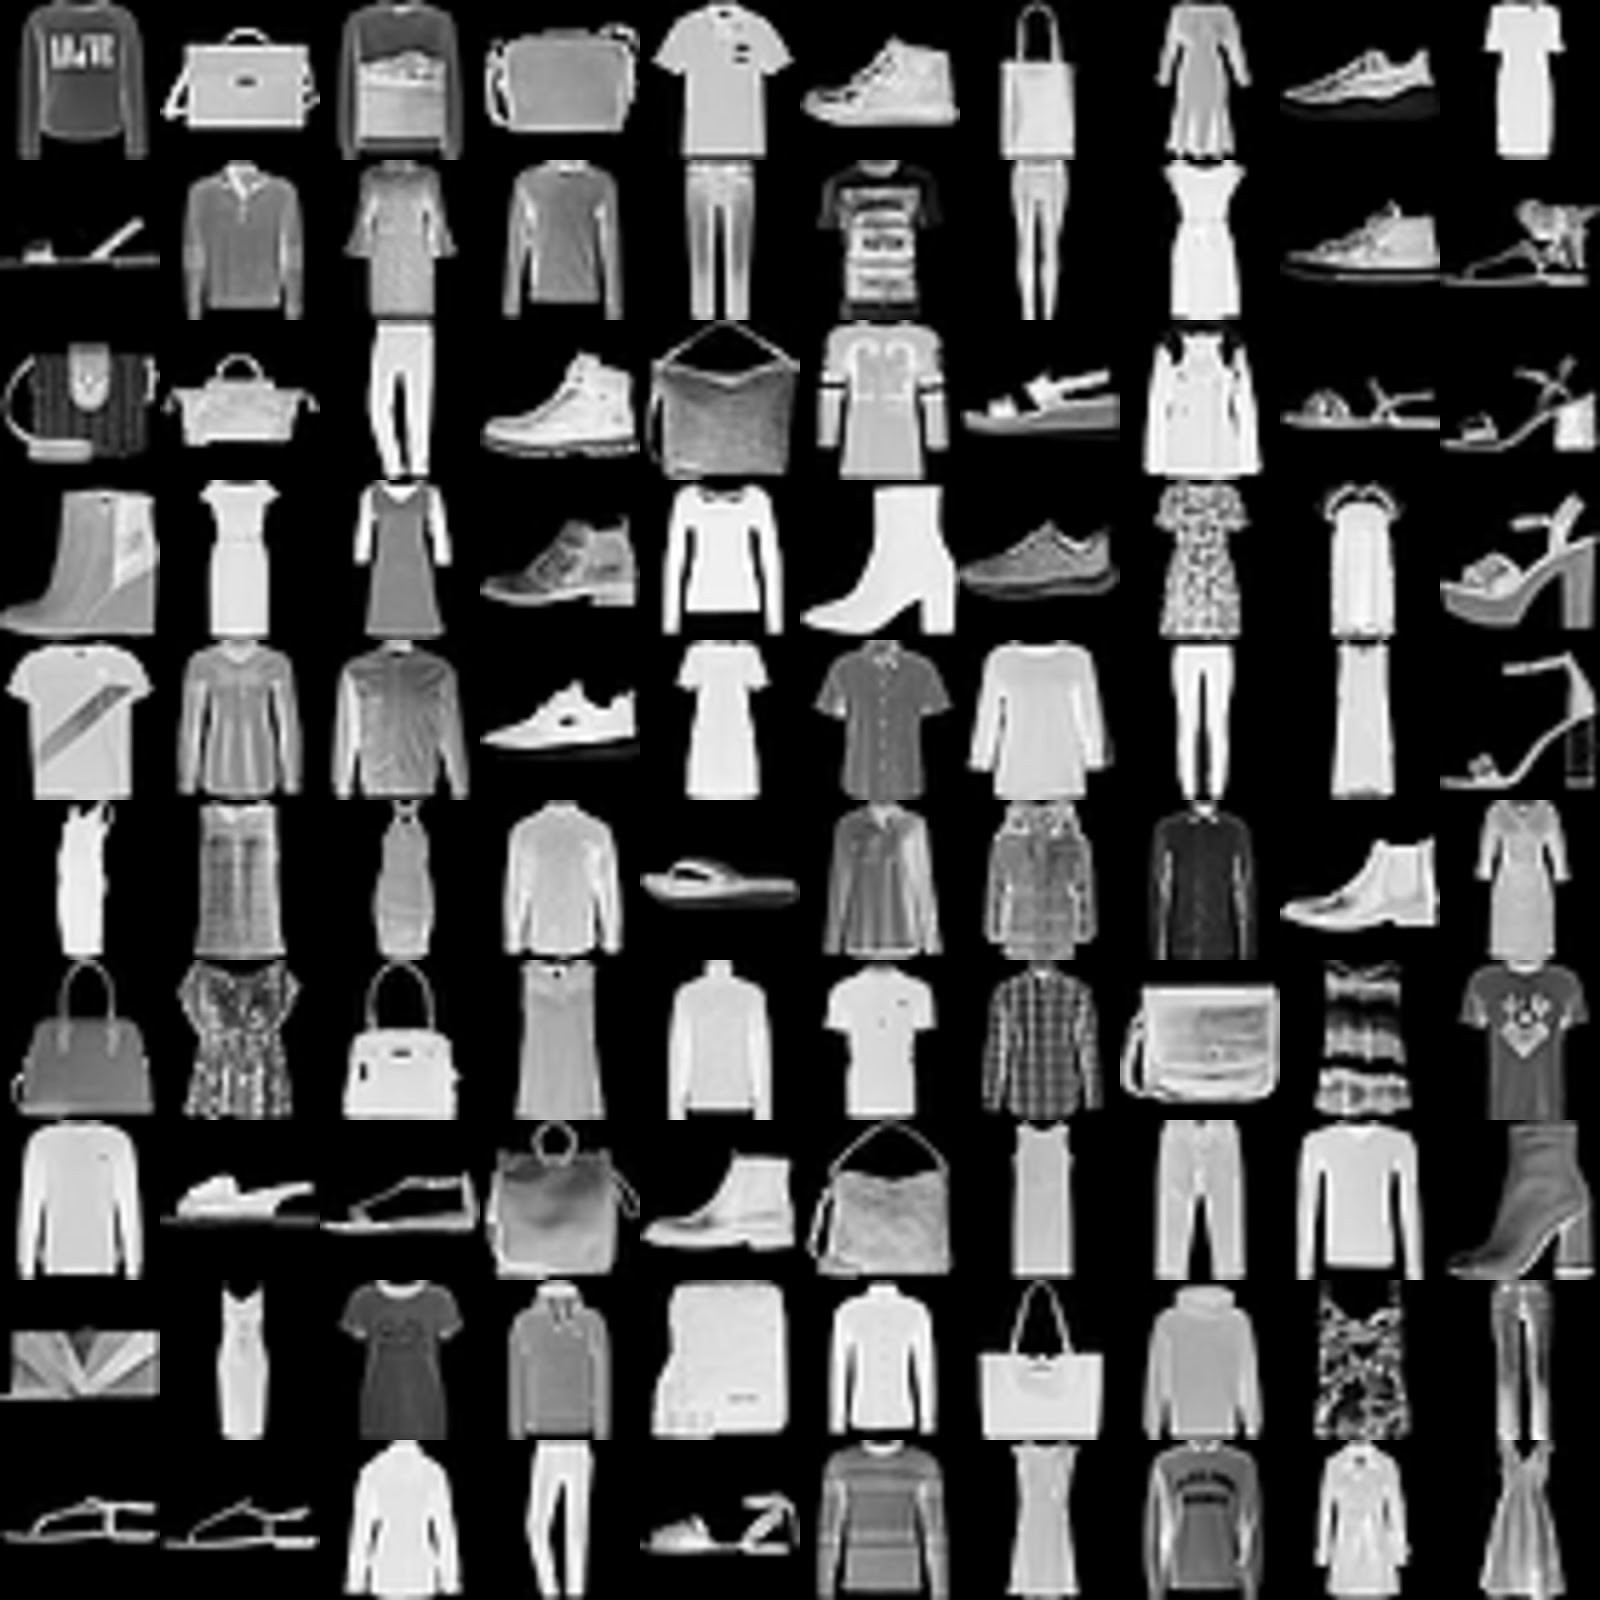 How to create a clothing classifier program using Deep